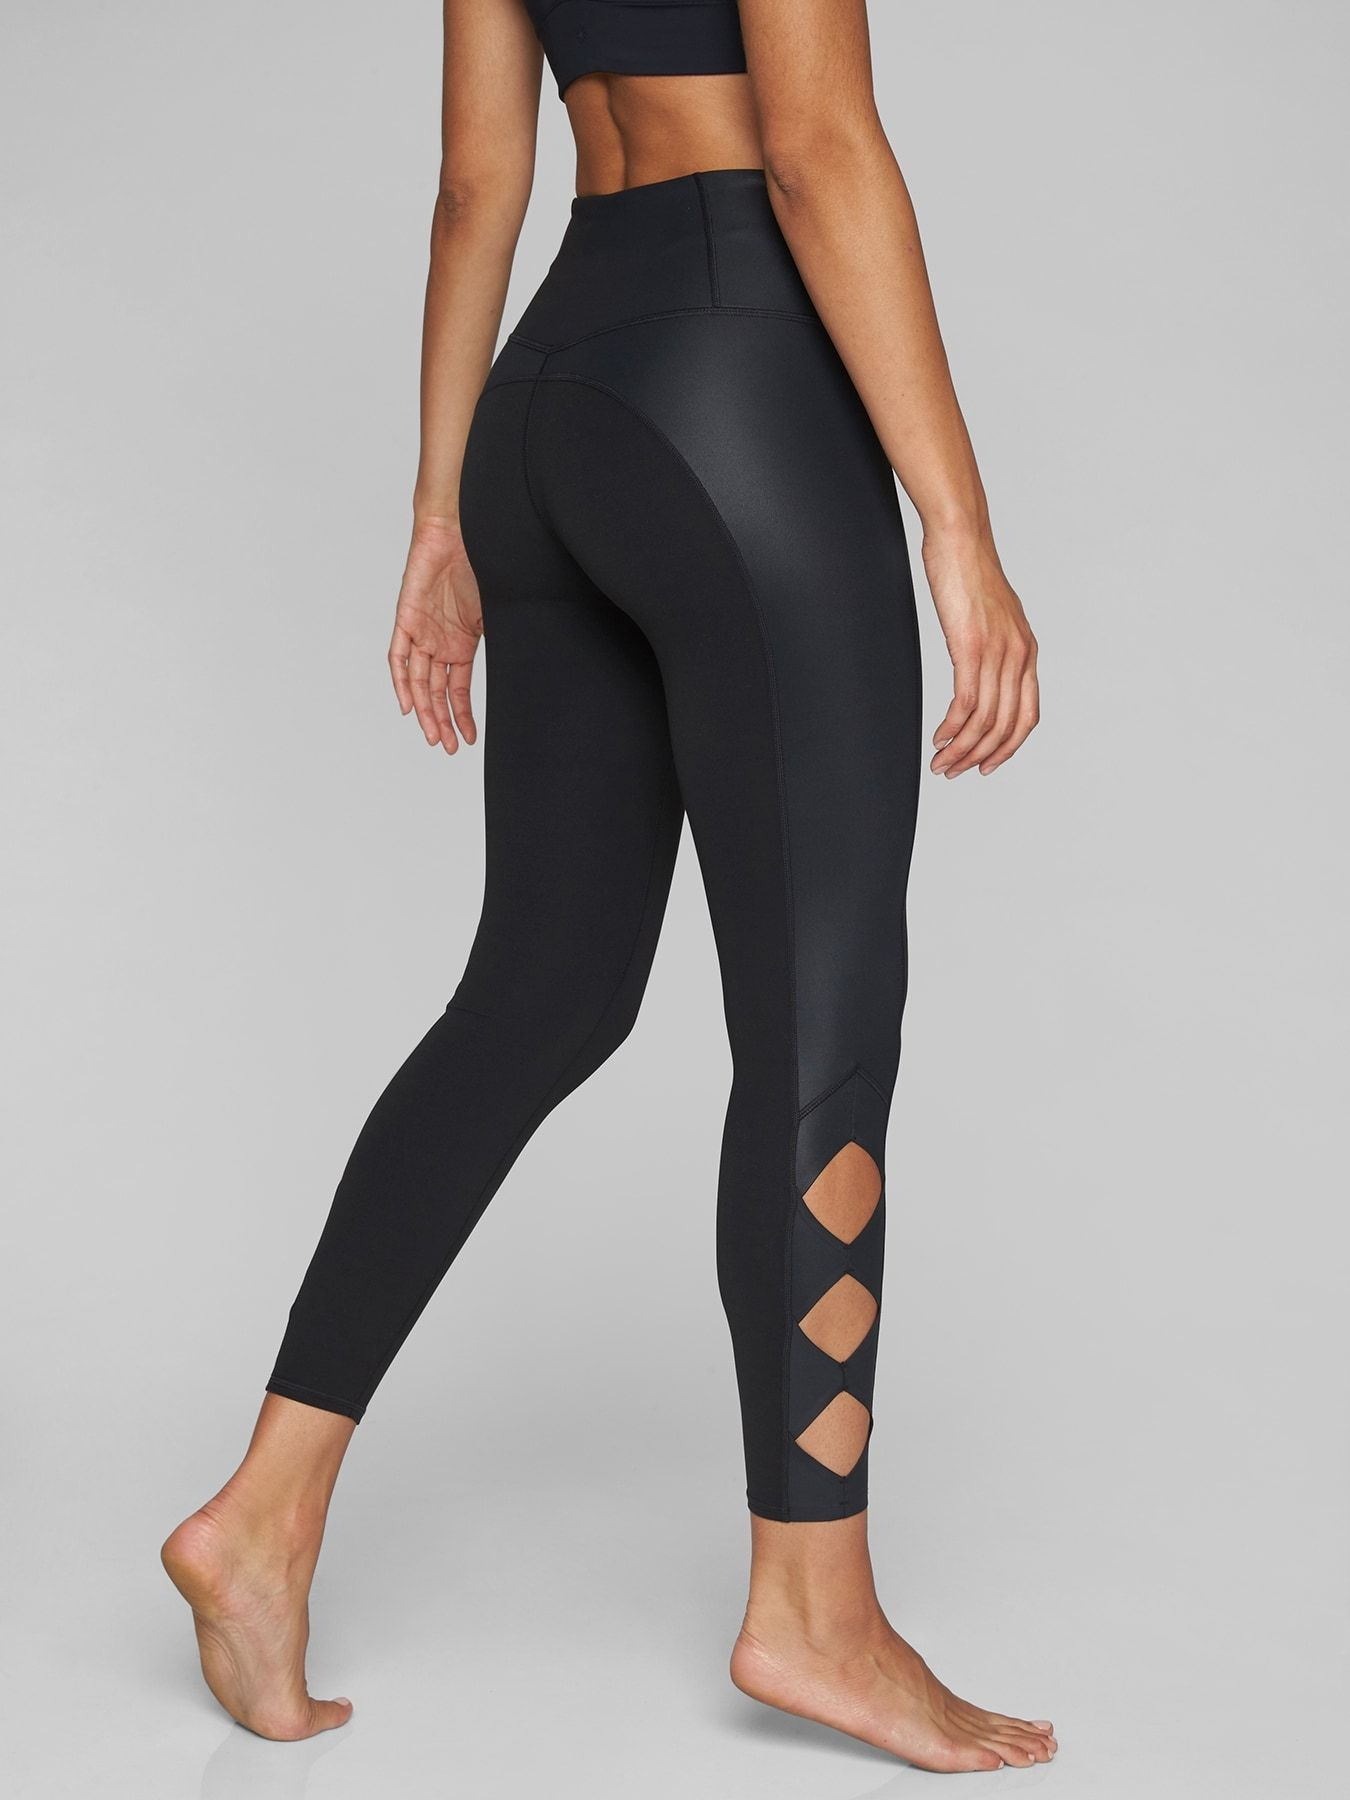 2079ec420518b ON SALE! Cobra Fitness Legging from Athleta. Cut-out diamonds at the calves  give these high-rise Powervita tights some extra pop, while their  sweat-wicking ...